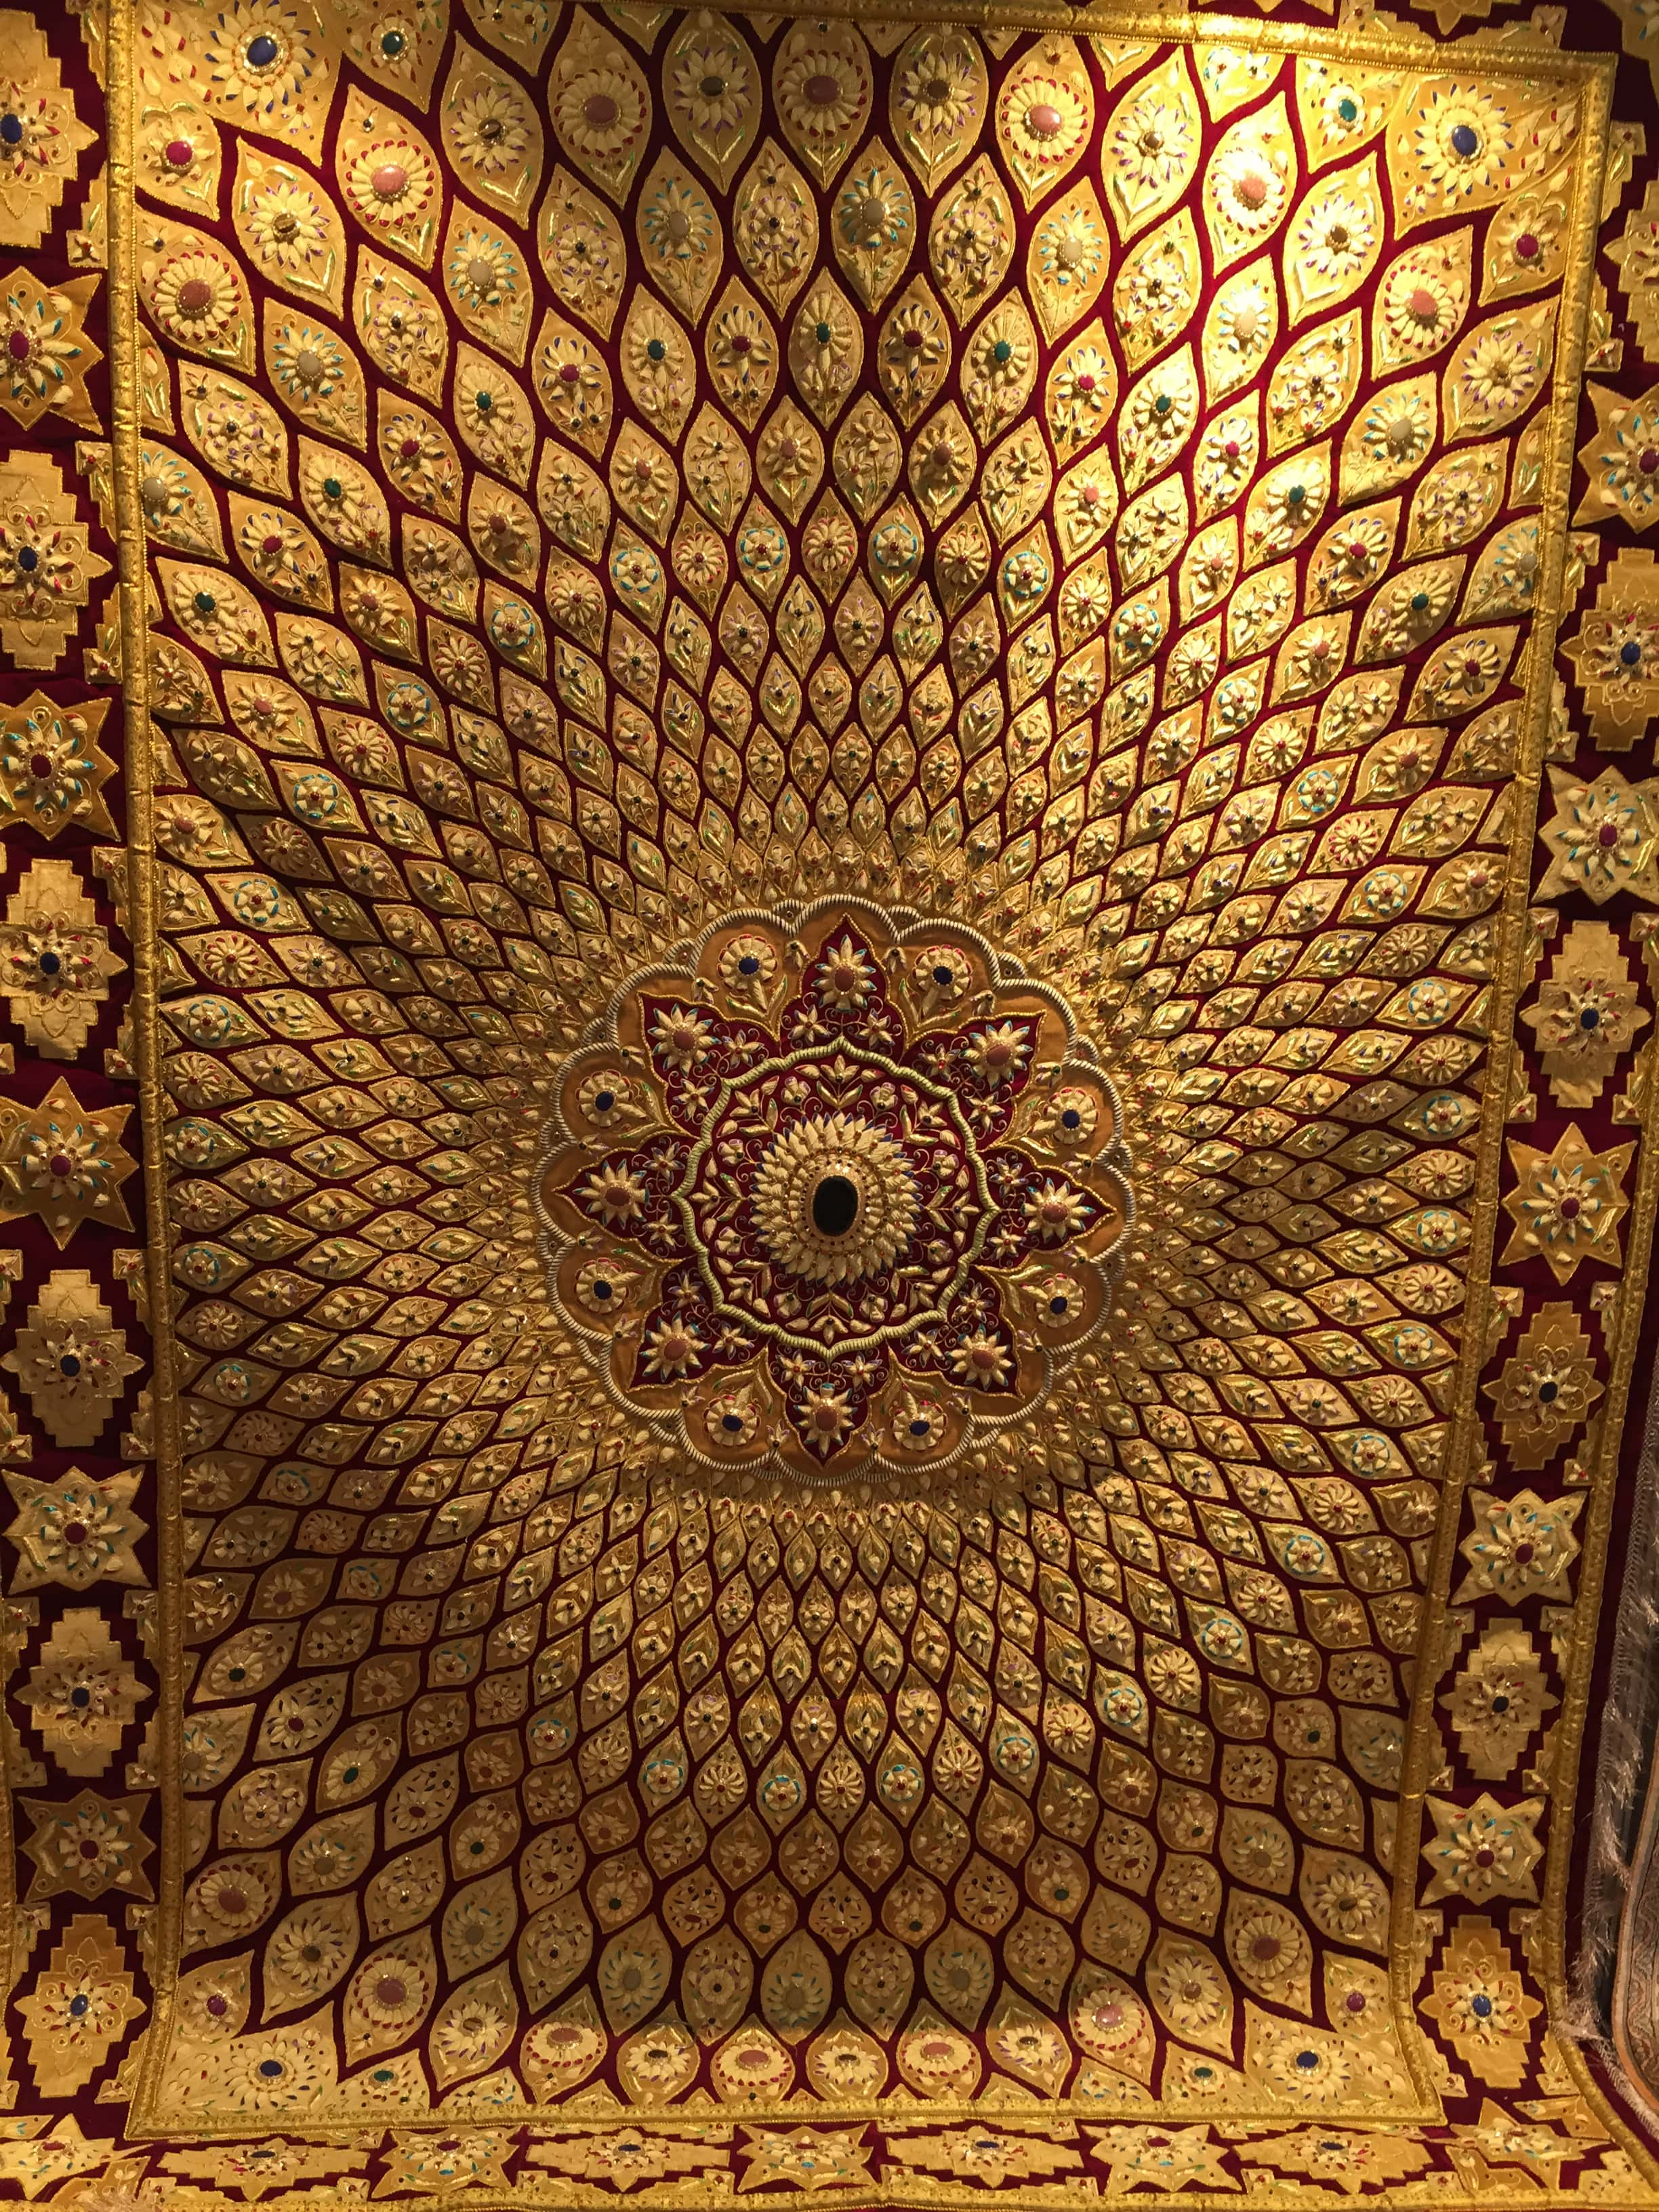 This Is An Image Of Rug From India Made From Real Gold Threads